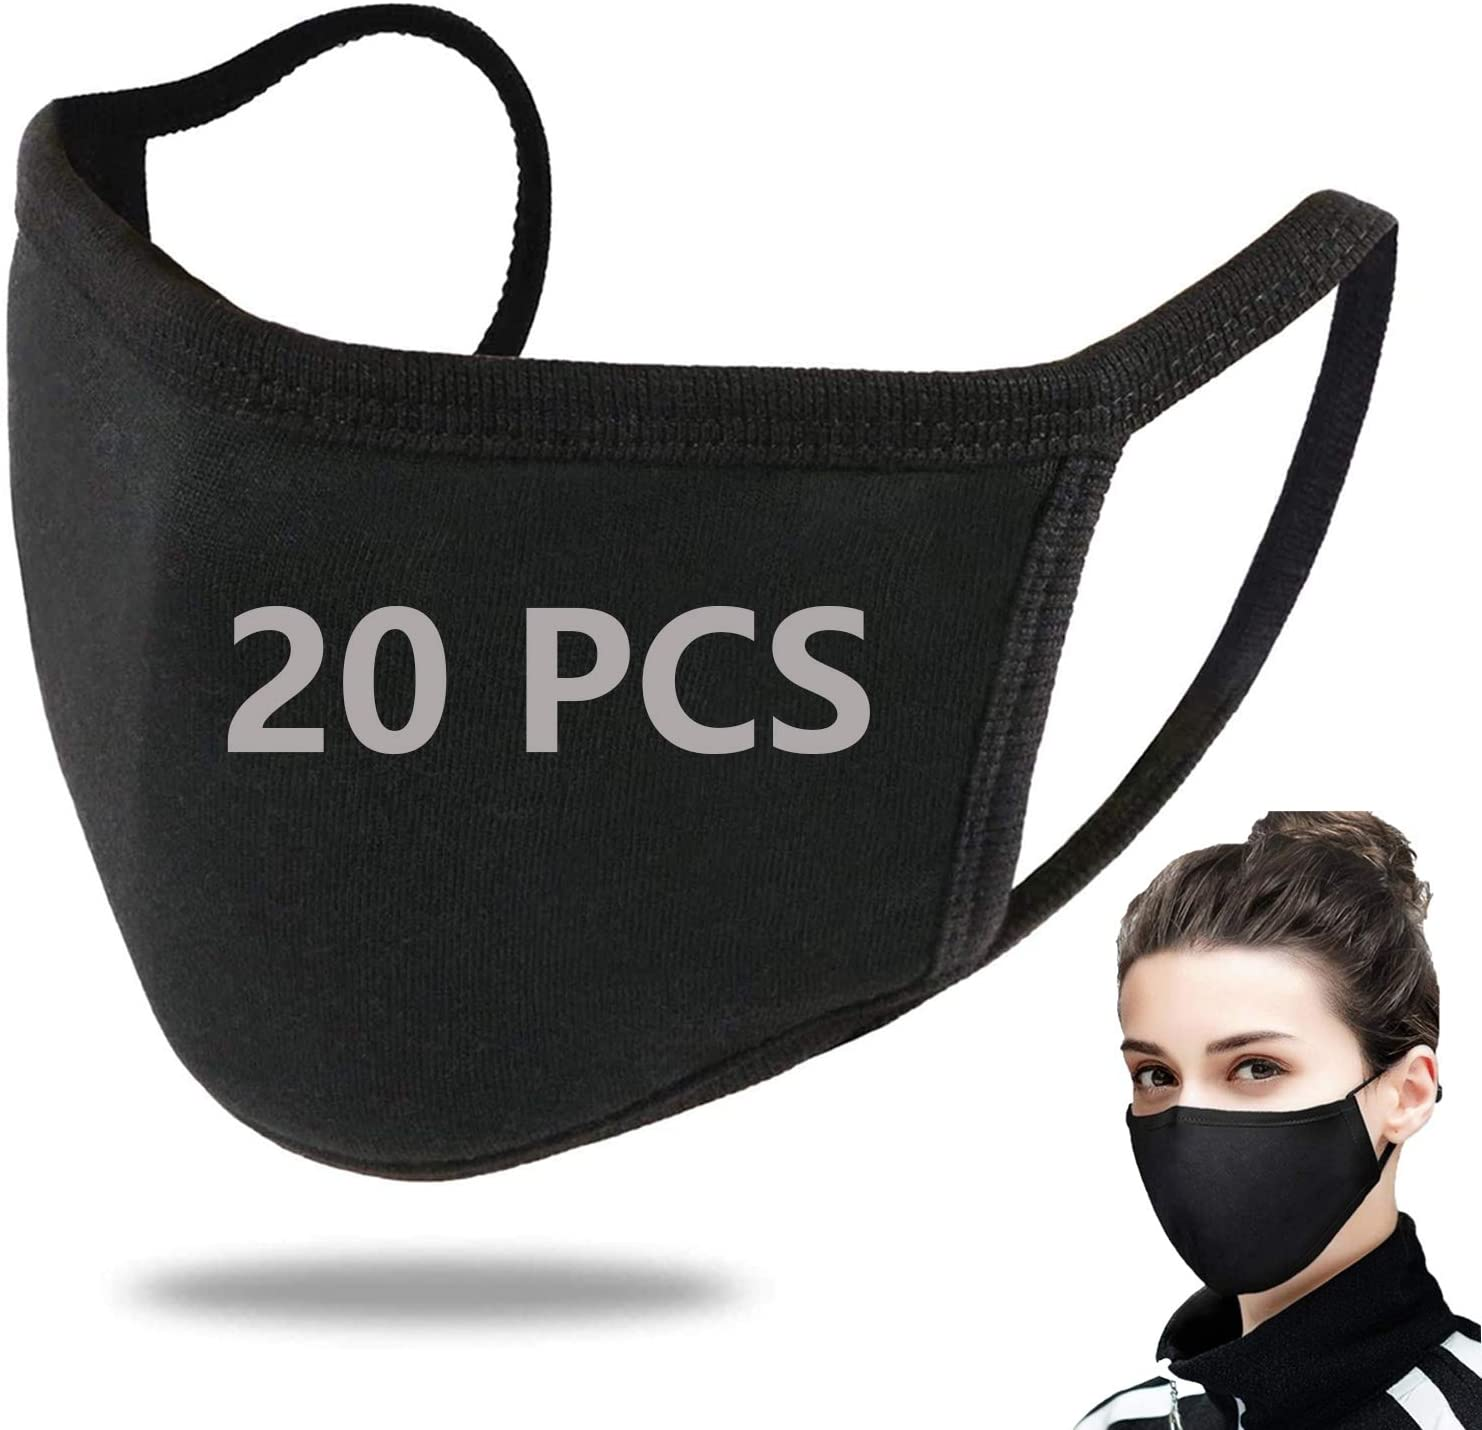 20 Pack Cotton Unisex Fashion Black Face Reusable, Soft Lightweight Comfy for Cycling Camping Travel for Kids Teens Men Women